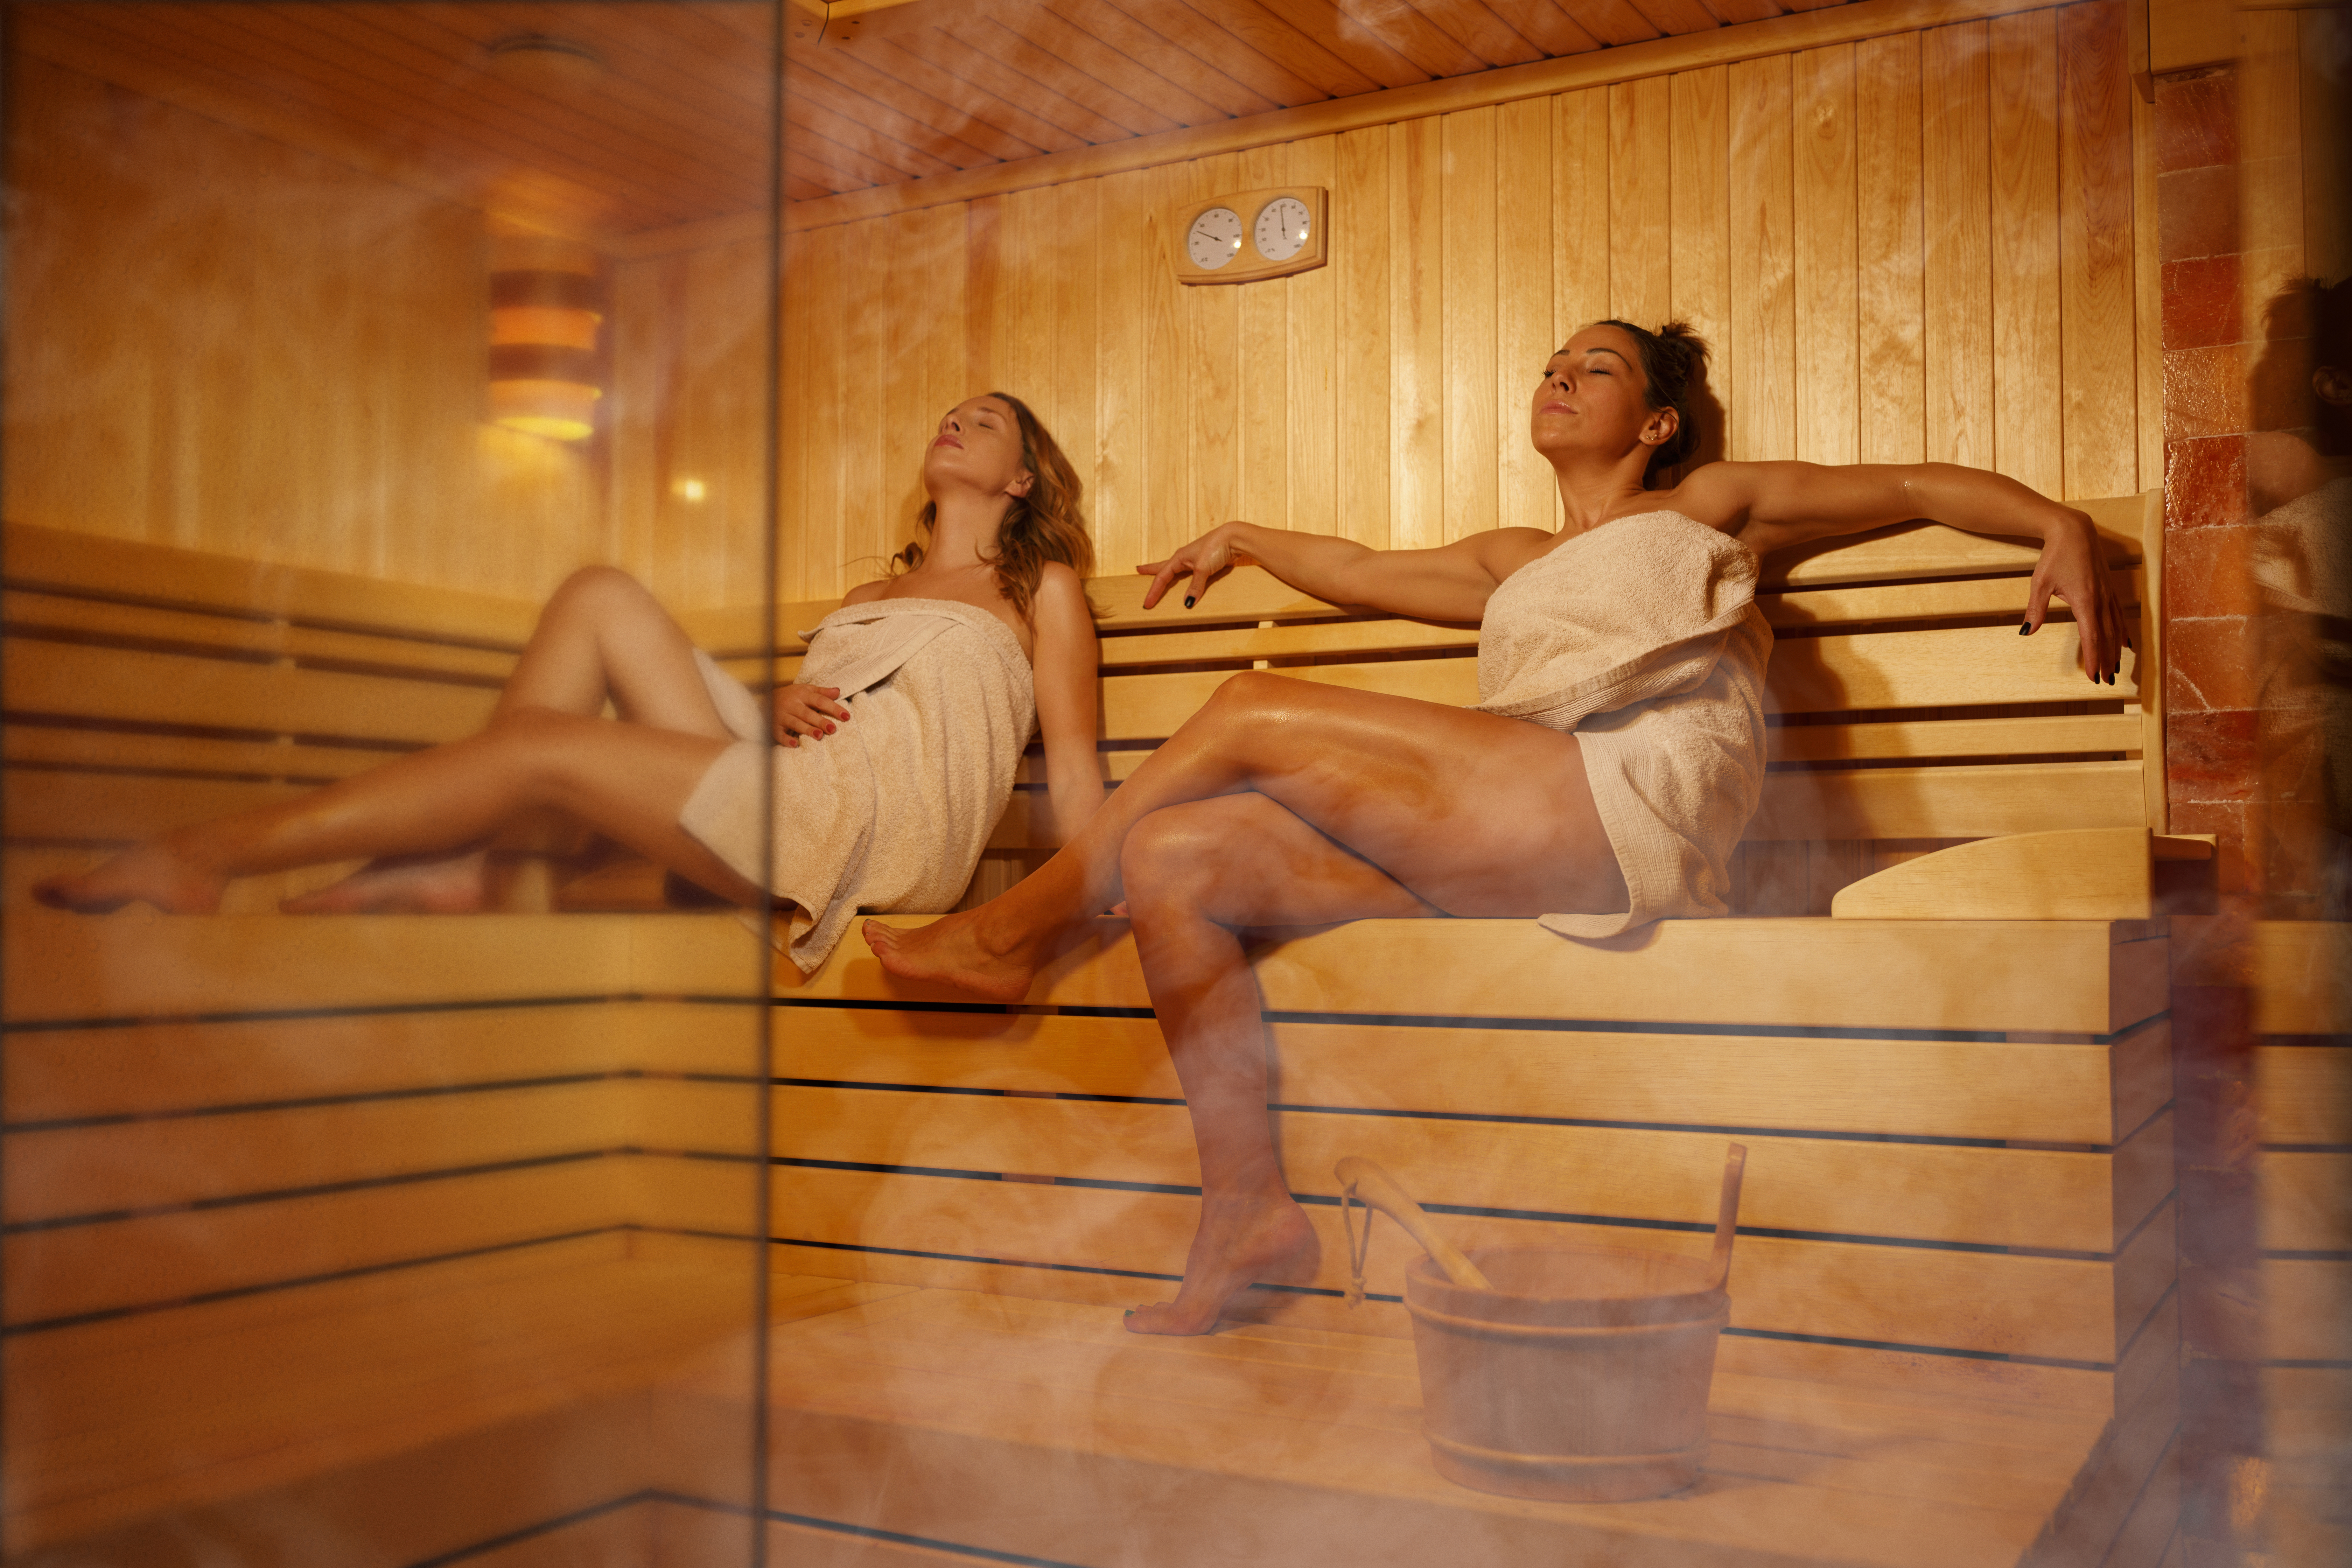 Don t overstay your steam room welcome here s how long and how